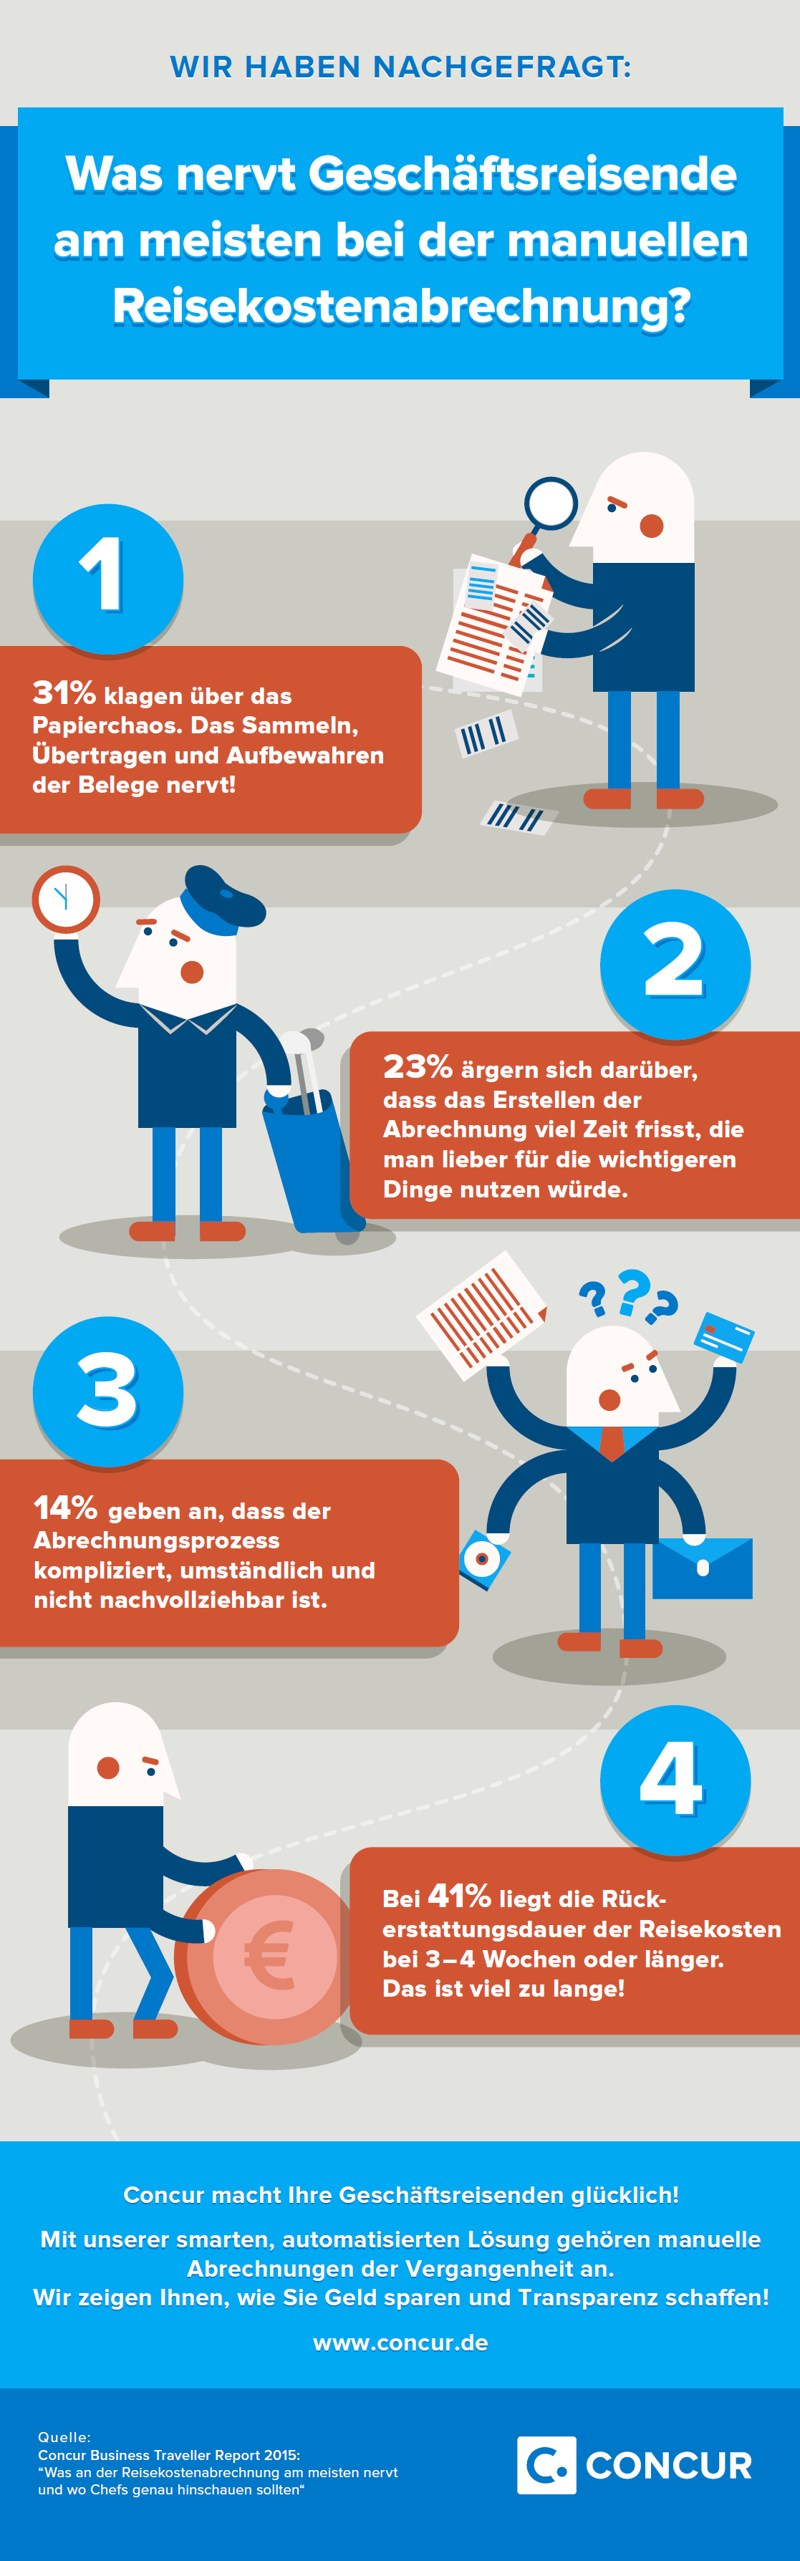 infografik concur business traveller report